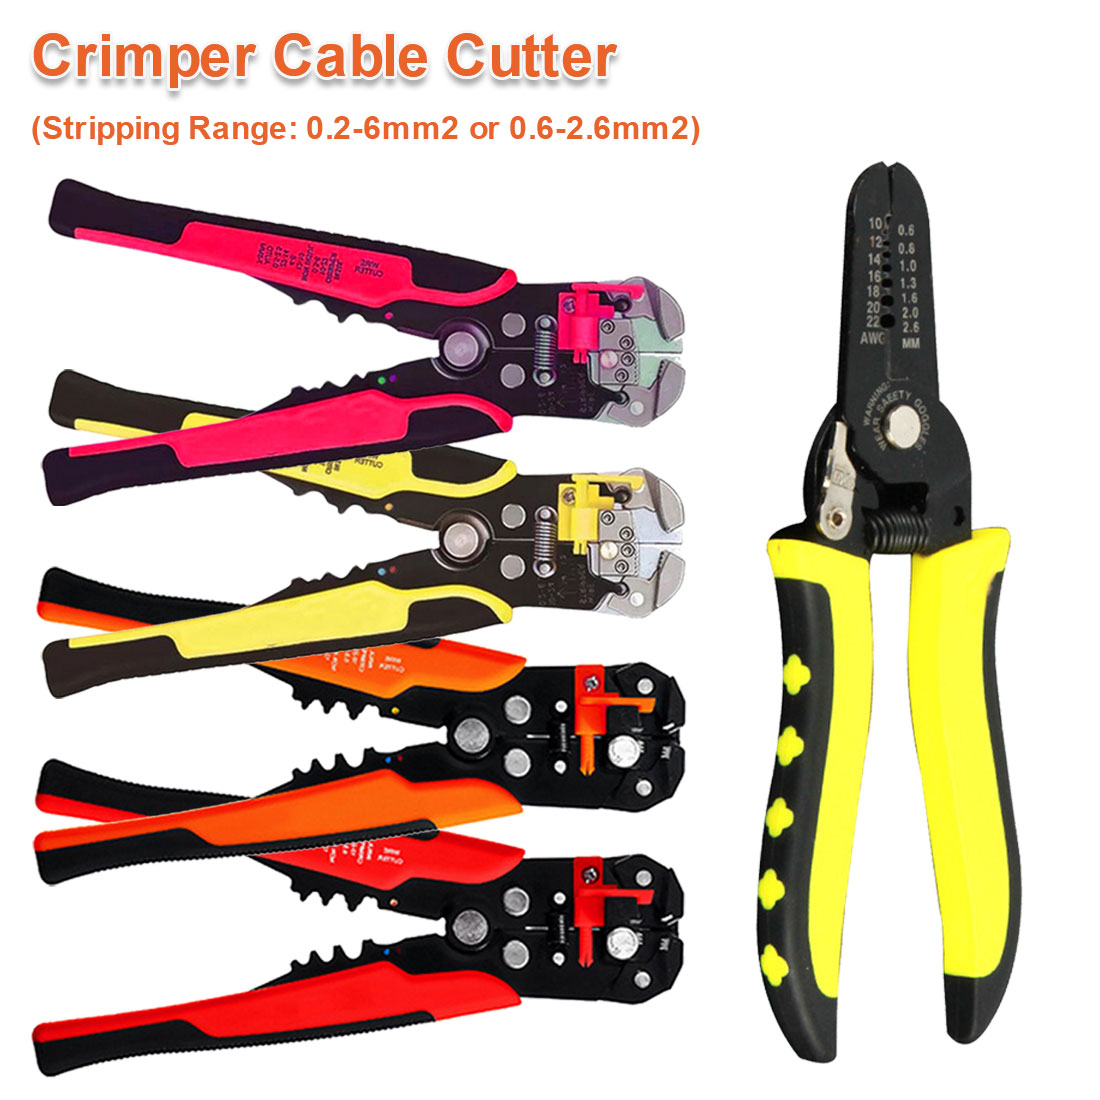 Crimper Cable Cutter Automatic Wire Stripper Multifunction Pliers For Wire Stripping Crimping Terminal 24-10AWG/ 0.2-6mm2